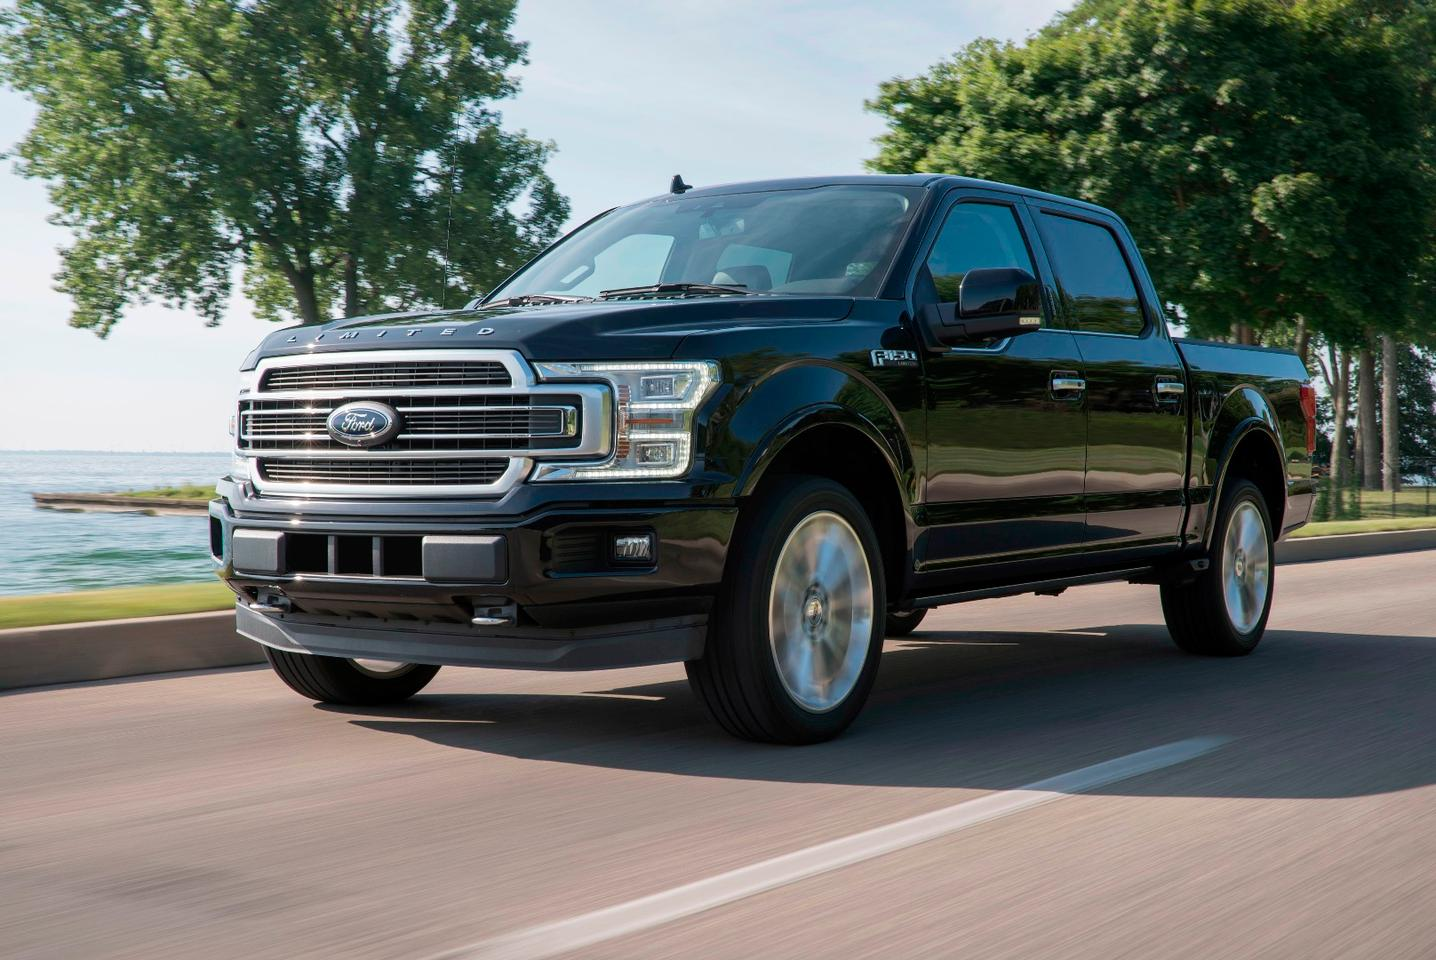 2019 Ford F150 Limited,the king of the F150 range,gets a Raptor-level heart